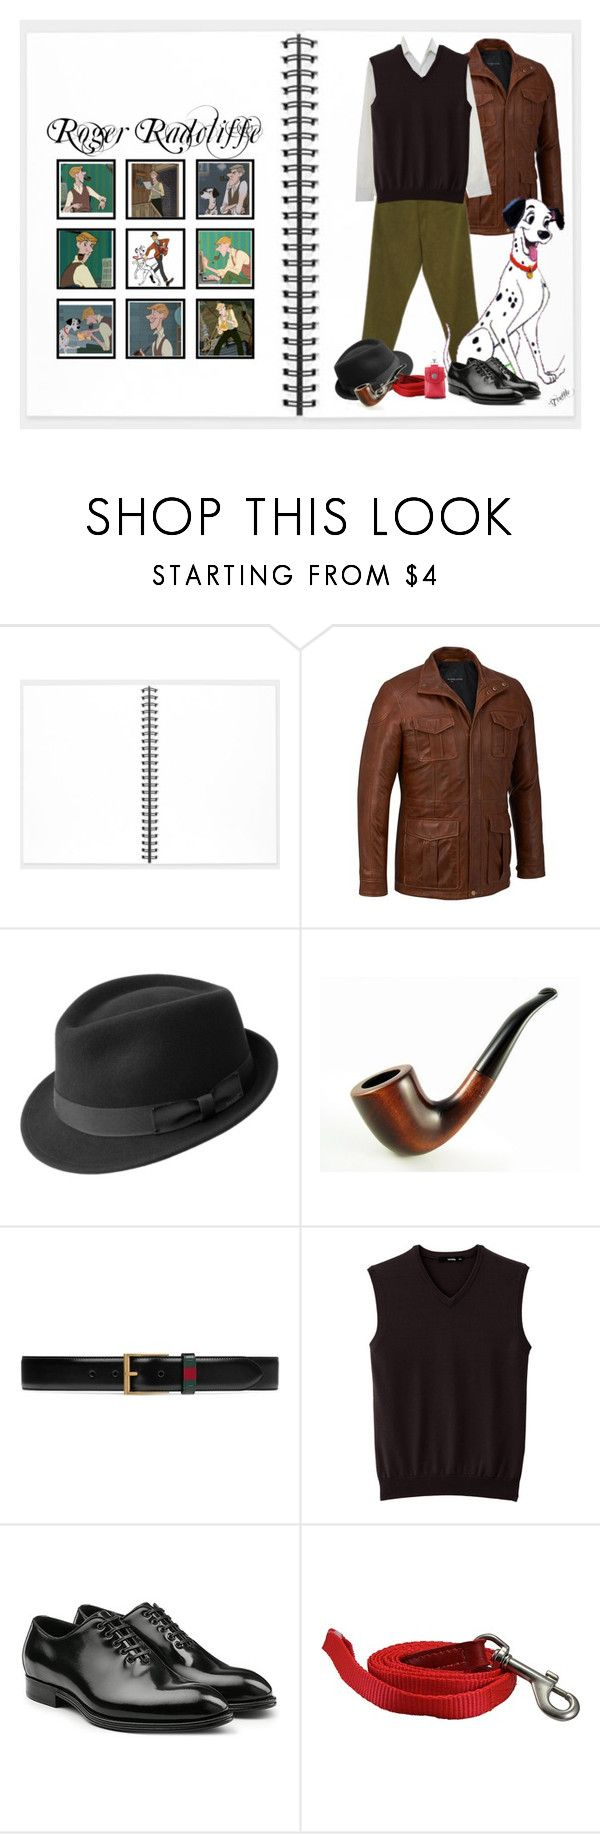 """""""Roger Radcliff (1696)"""" by trufflelover ❤ liked on Polyvore featuring Muji, Wilsons Leather, Bailey, Radcliffe, Gucci, Dolce&Gabbana, Pottery Barn, men's fashion and menswear"""